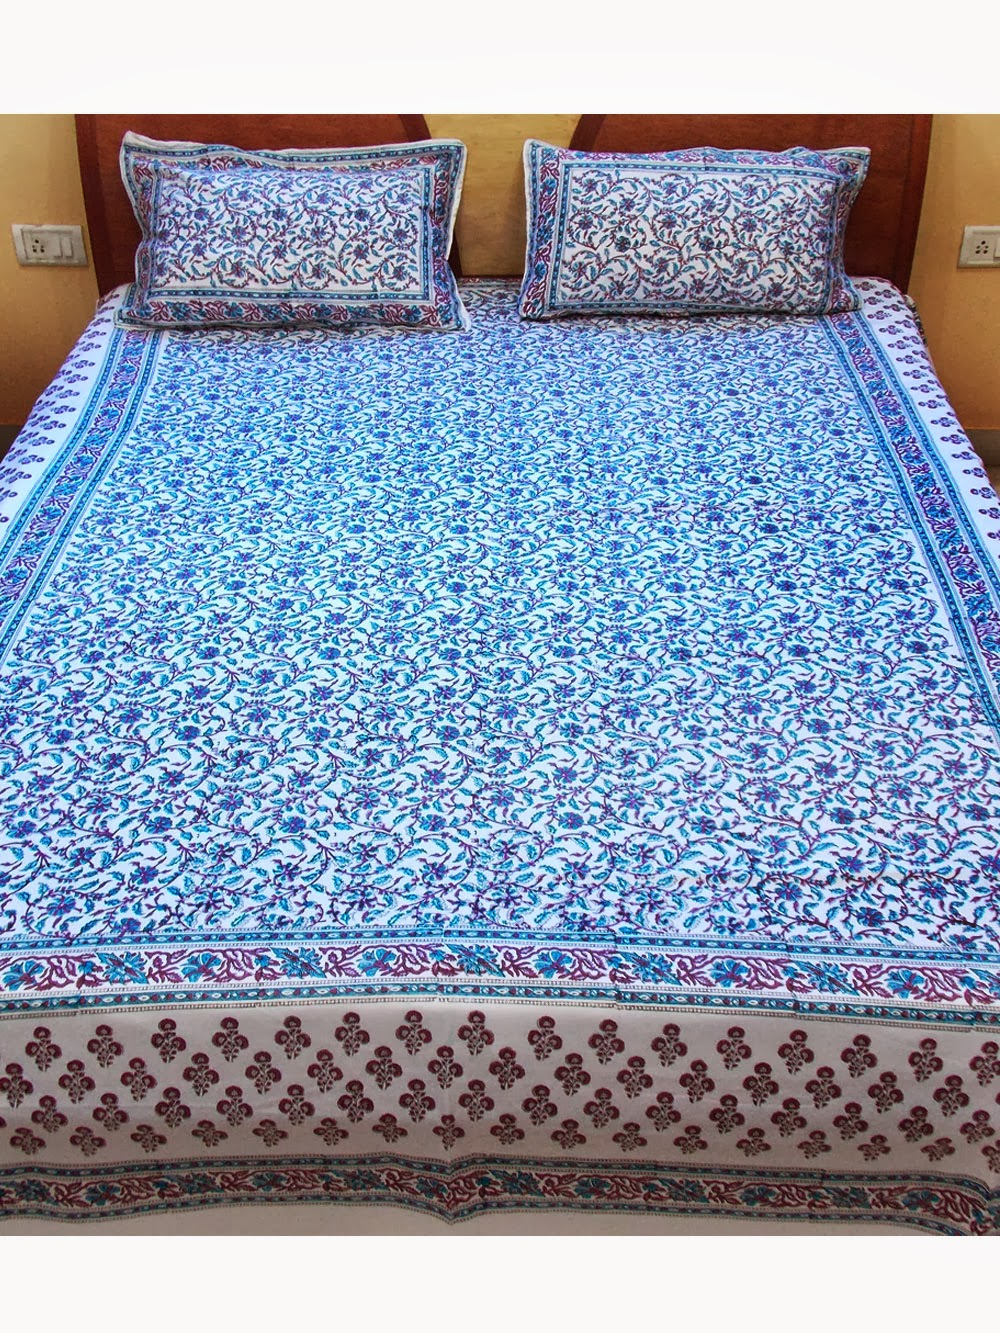 Cotton Is The Most Popular Supply To Make Bedsheets. This Fabric Is Not  Just Beautiful, But Itu0027s Everlasting And Comfortable.